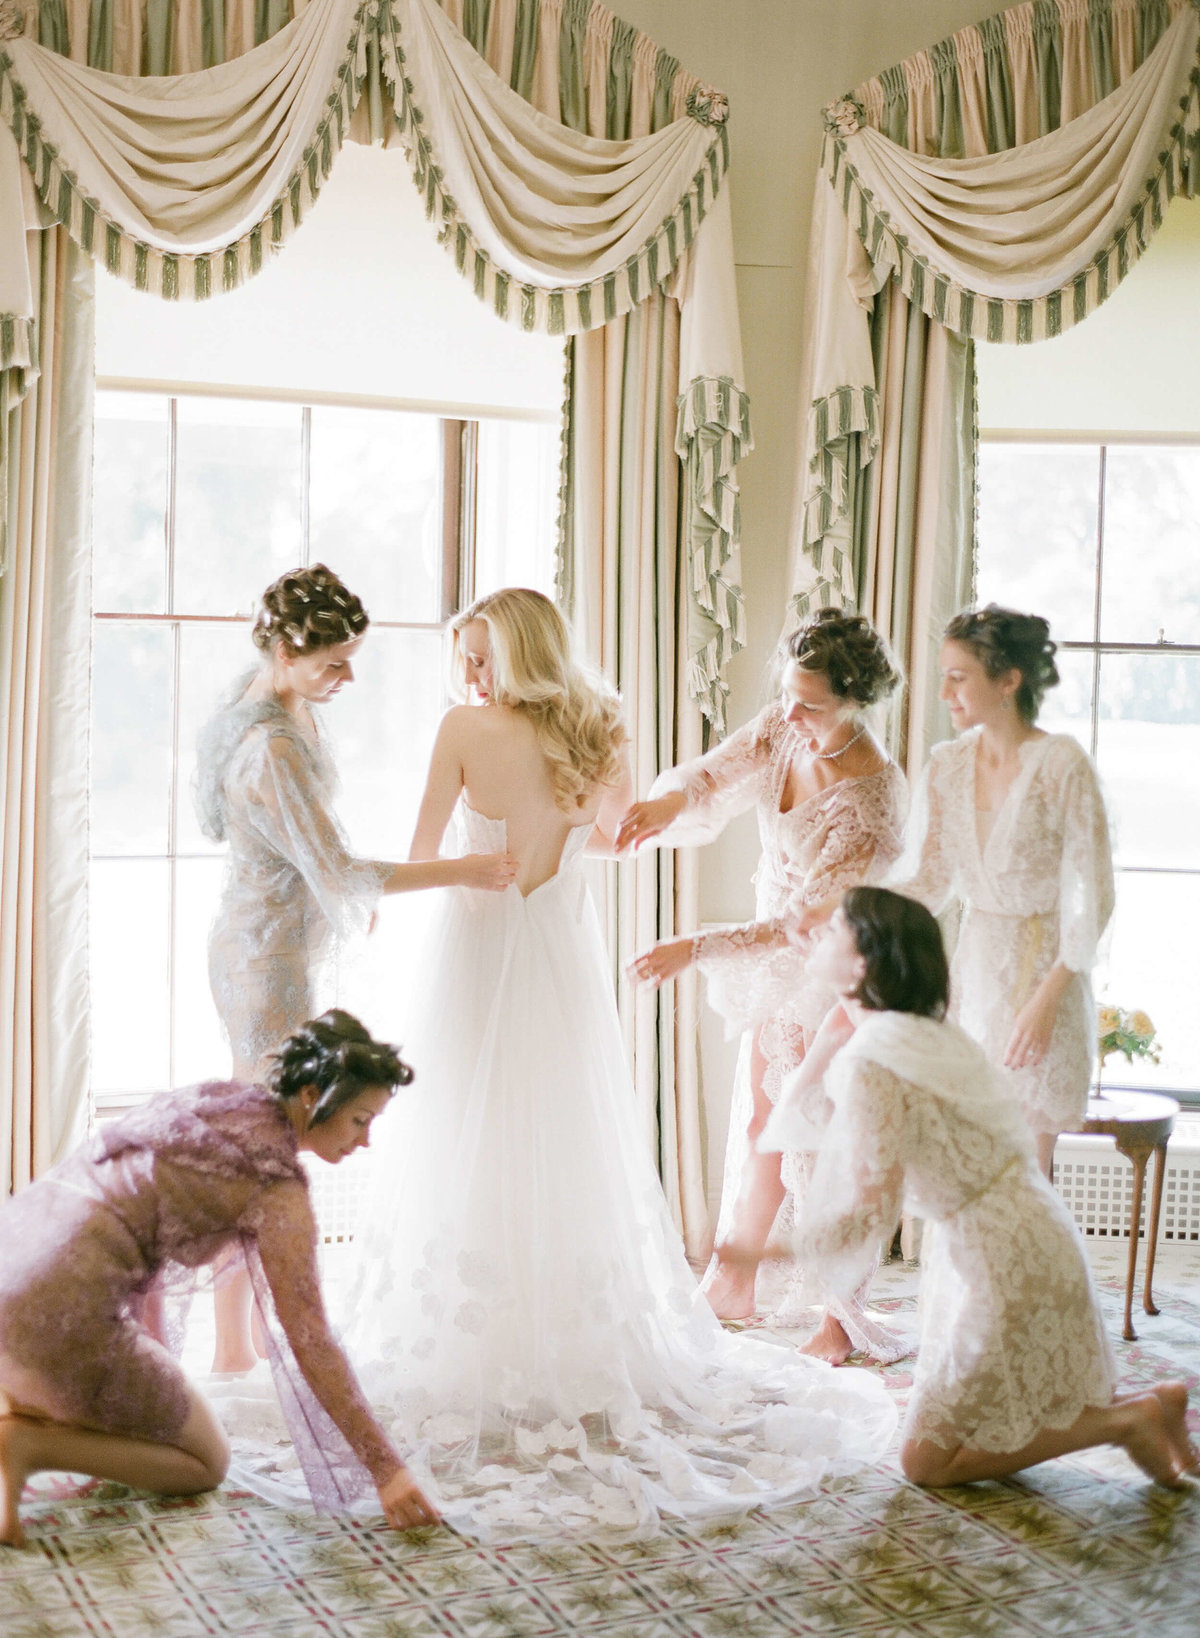 35-KTMerry-weddings-bridal-preparation-Ballyfin-Ireland